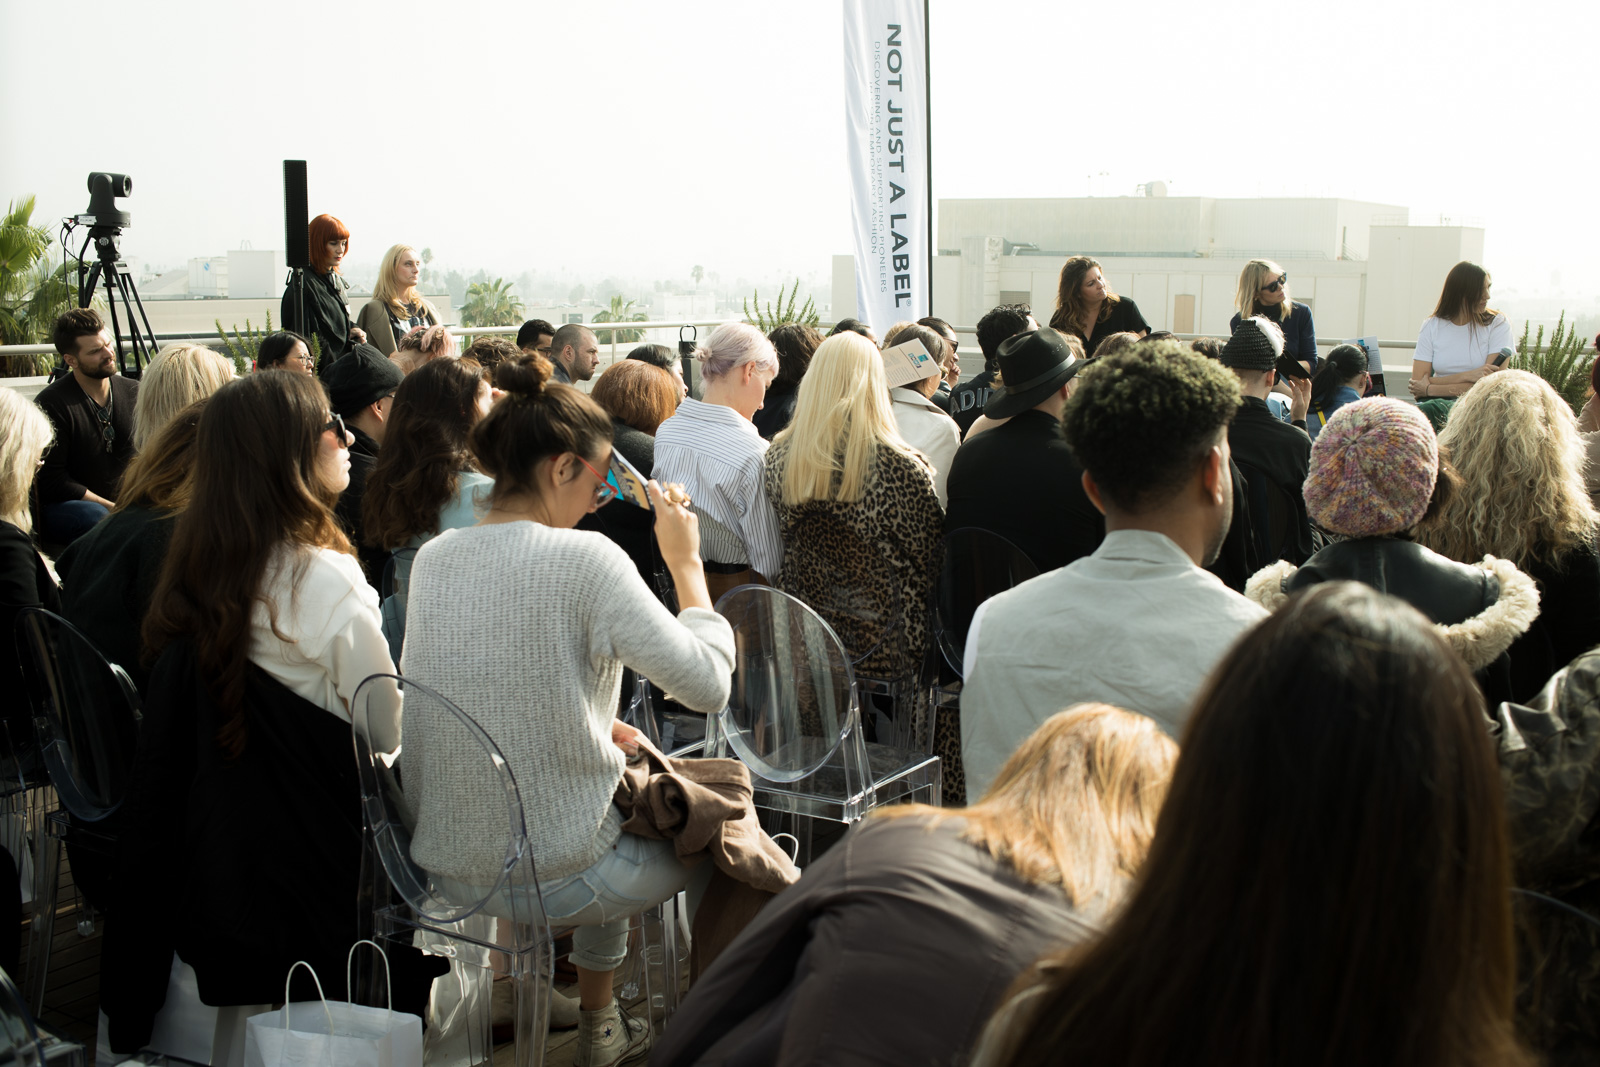 Launch of NOT JUST A LABEL's Authentic Radicalism at NeueHouse Hollywood on December 13, 2016 in Los Angeles, California.